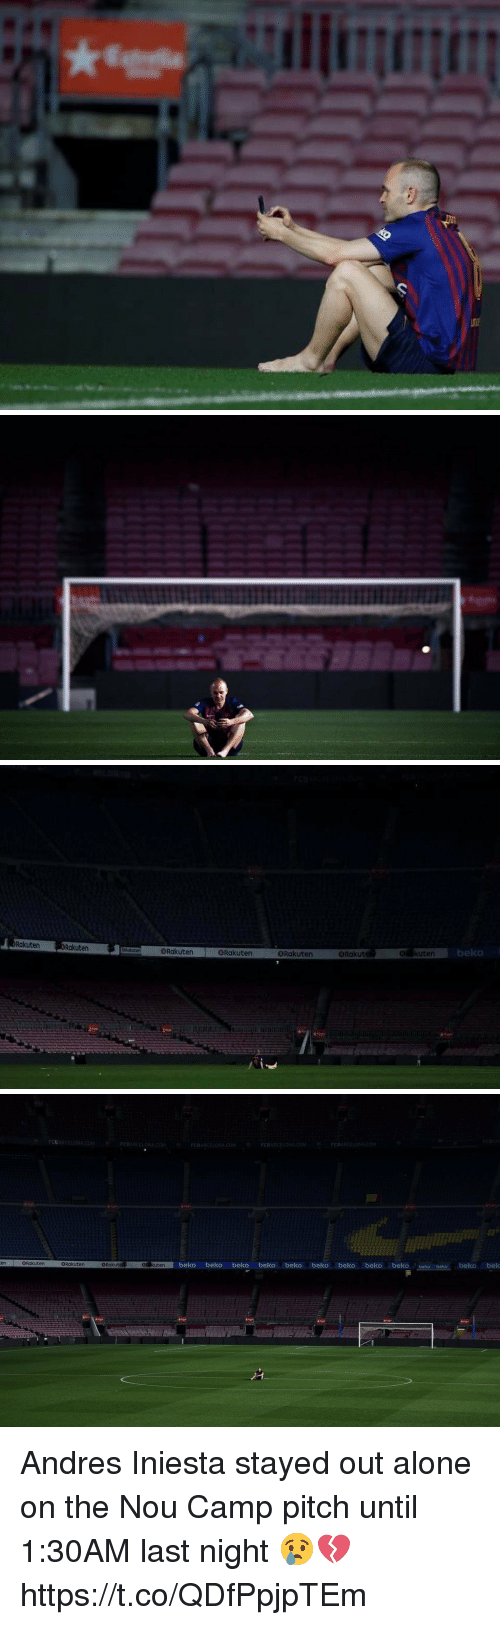 Being Alone, Soccer, and Andres Iniesta: Rakuten  or kuten  beko  Rakuten  ORakuten ORakuten  Rakuten ORo  ORakut   CEARCELONA.COM  CBARCELONA.COM  CBARCELONACOM  CBARCELONA.COM  FCBARCELONACOM  enORakuten  beko beko beko beko beko beko beko beko beko beko belko beko bek  BRakuten  ORakut  OR kuten Andres Iniesta stayed out alone on the Nou Camp pitch until 1:30AM last night 😢💔 https://t.co/QDfPpjpTEm